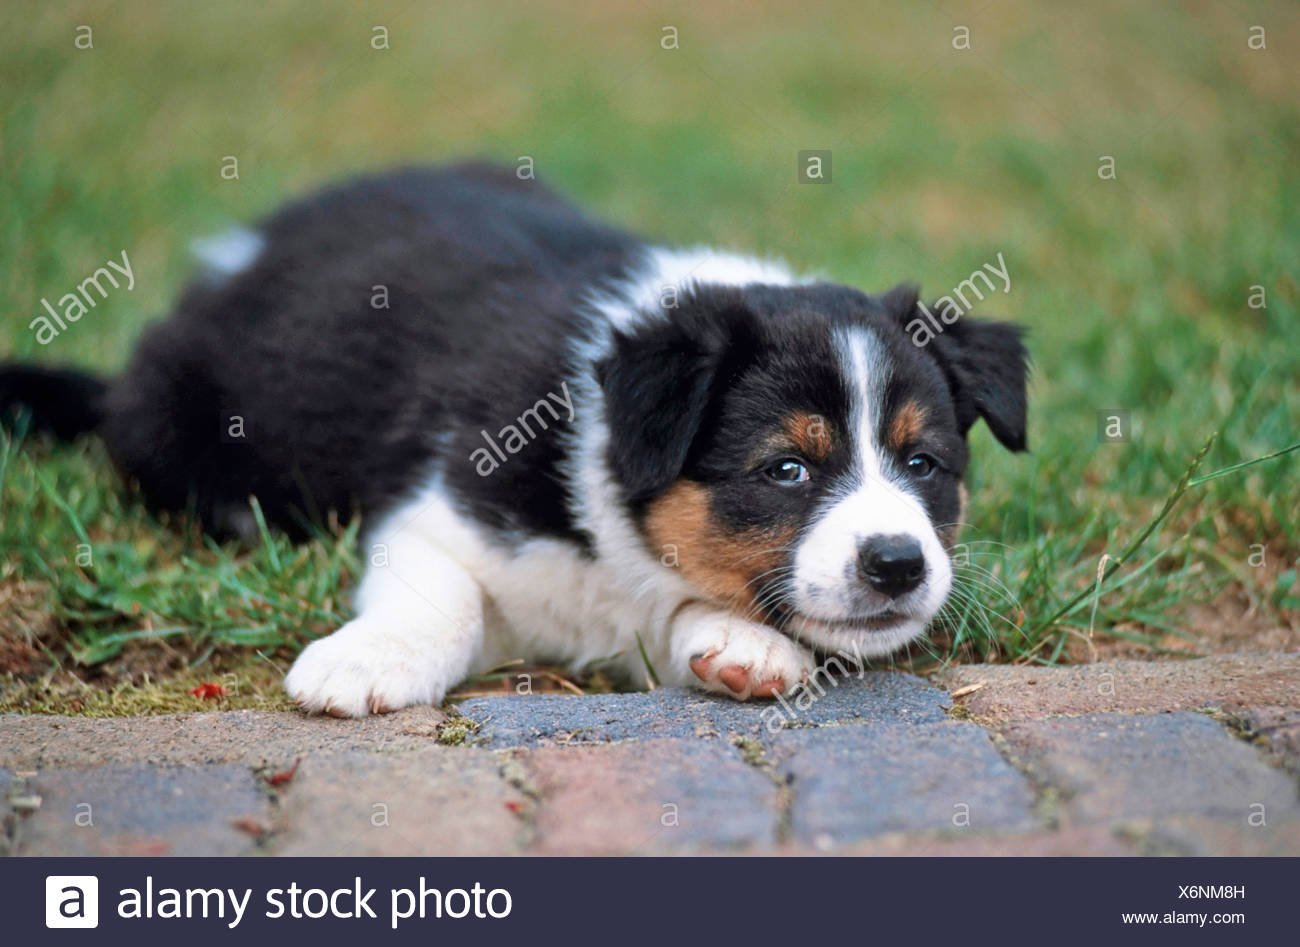 Border collie x australian shepherd